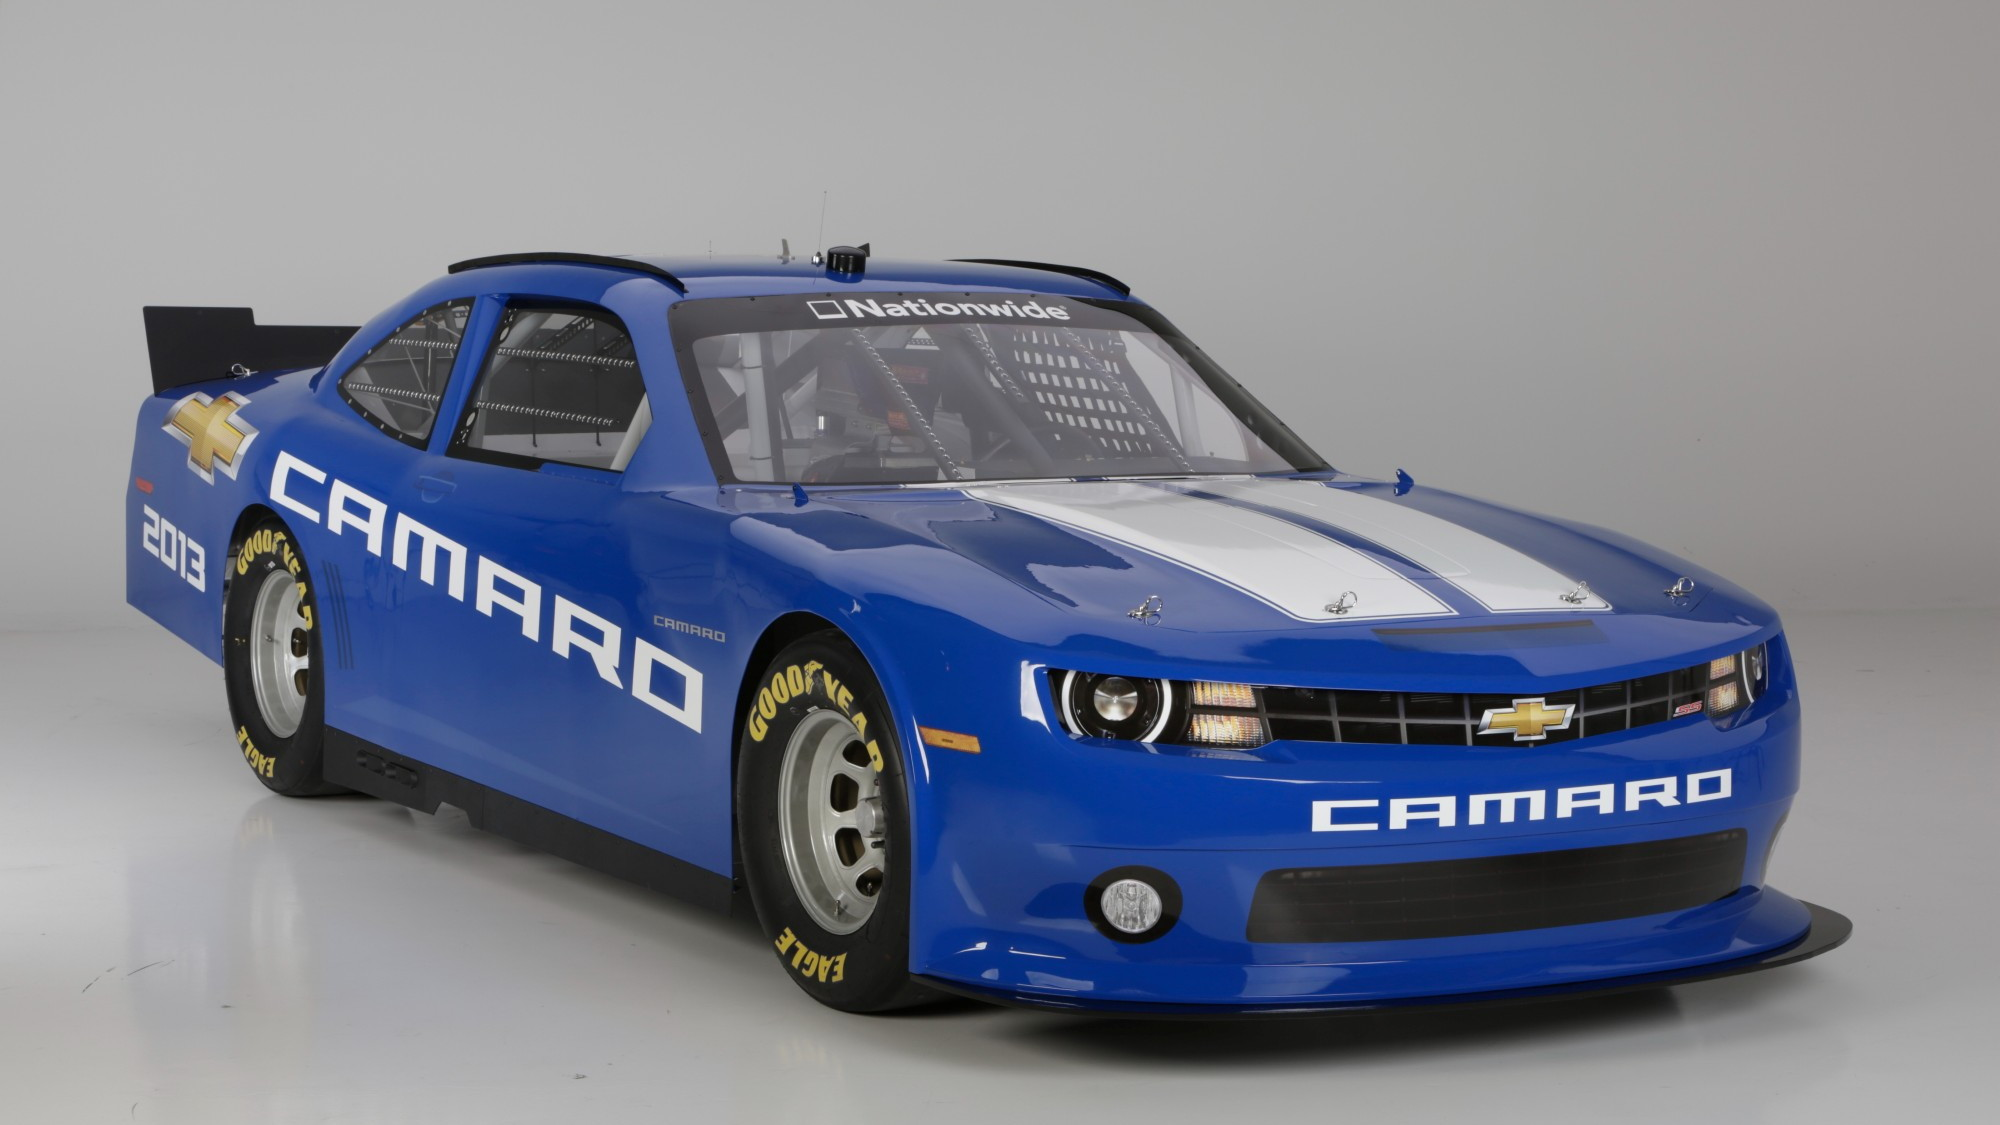 2013 Chevy Camaro NASCAR Nationwide race car